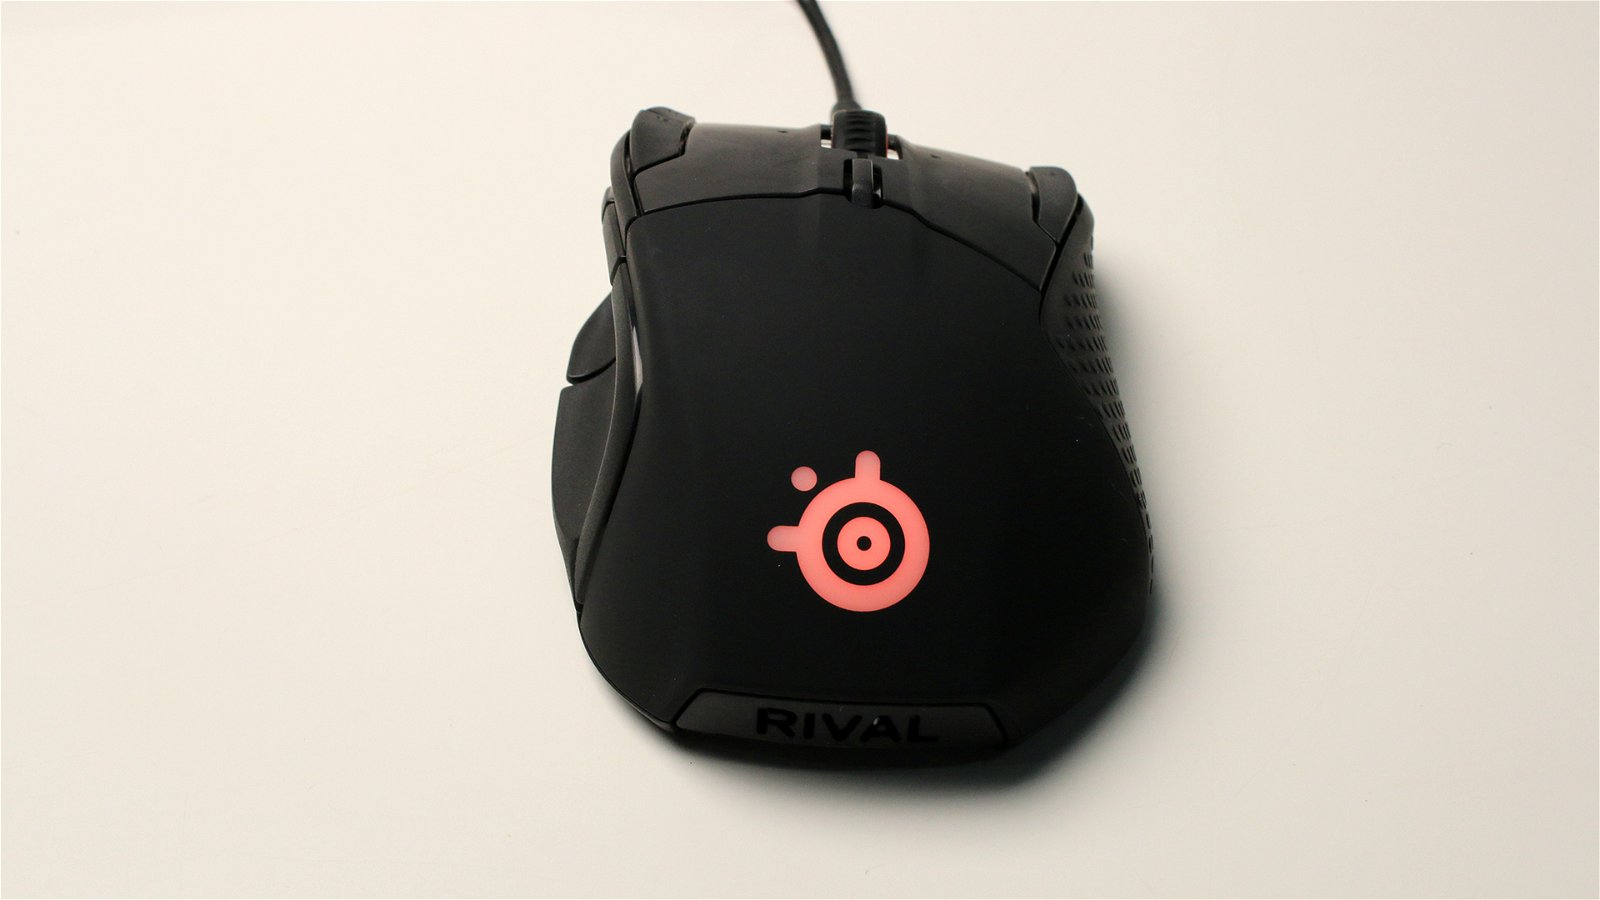 SteelSeries Rival 500 Gaming Mouse (Hardware) Review 2